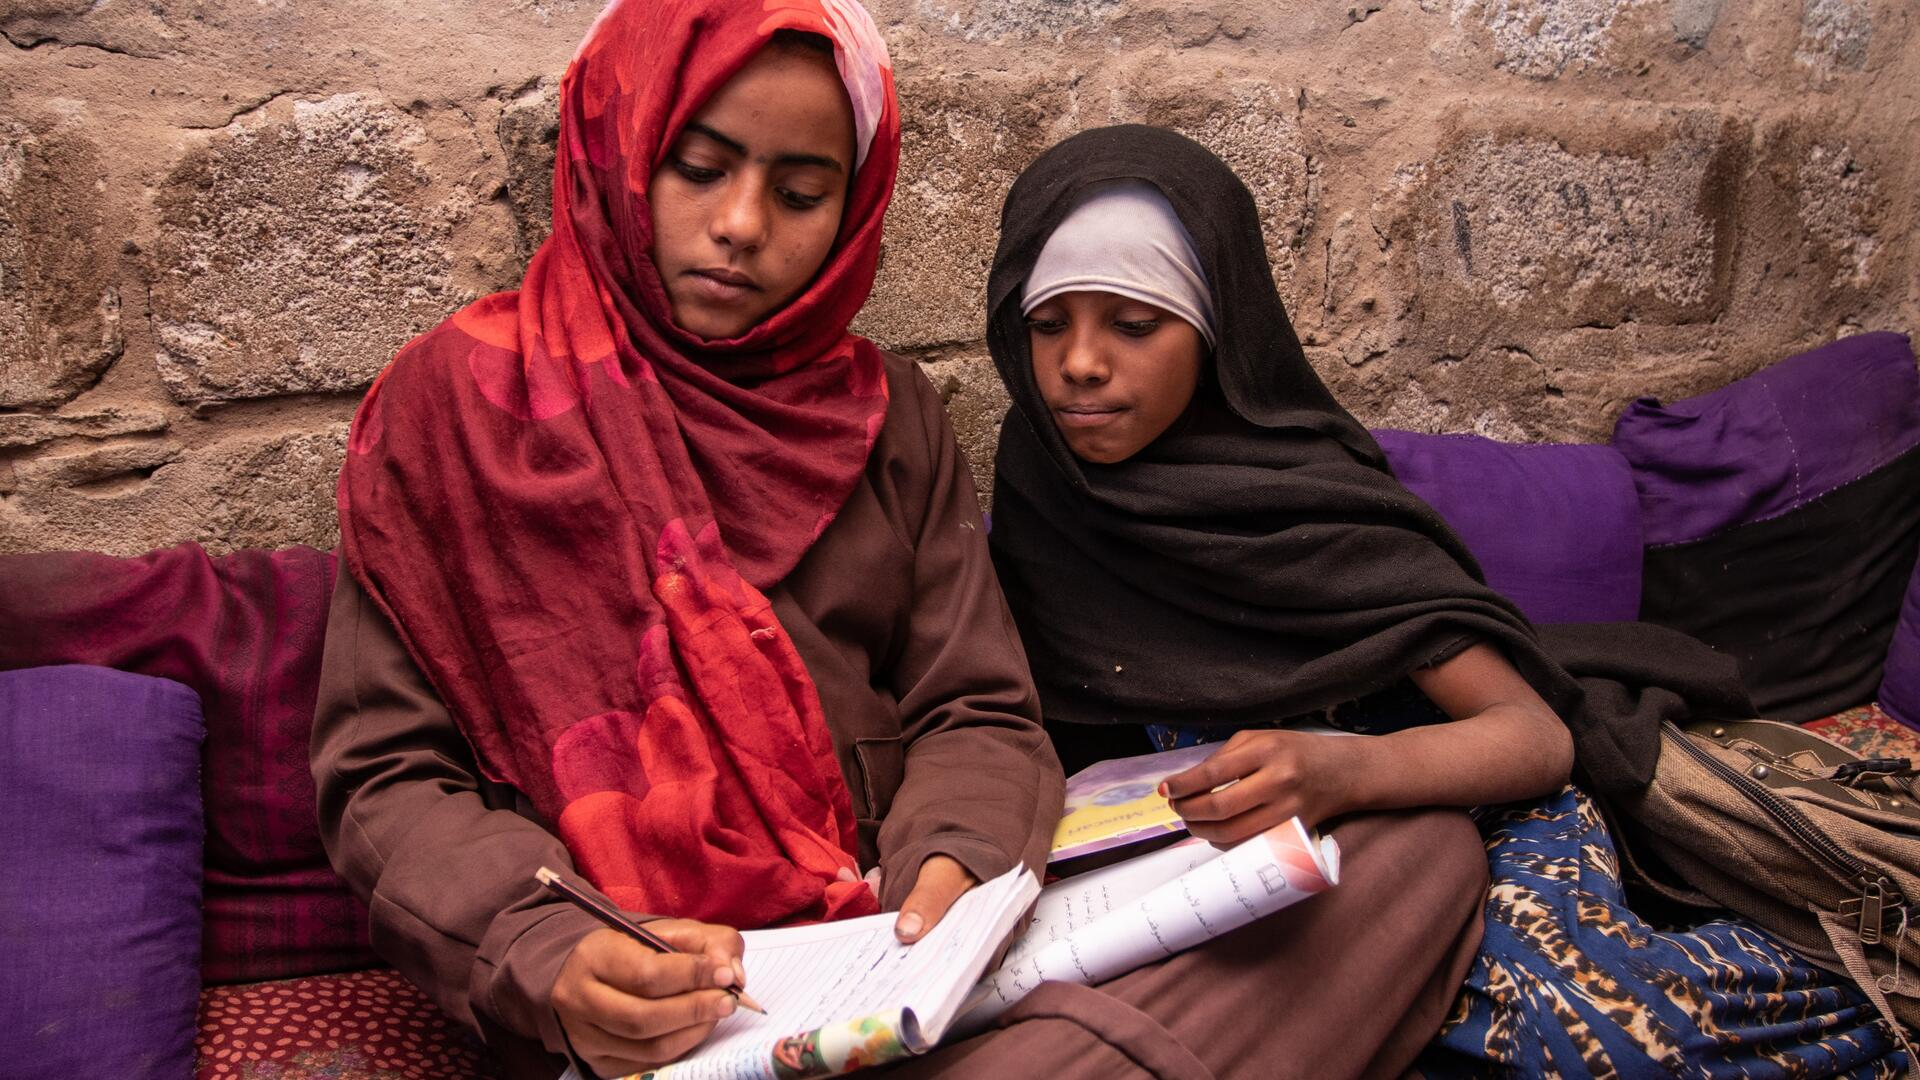 Na'aem, 11, and her best friend Aisha, 10, sit together on the ground studying a school book in a displacement camp in Yemen..